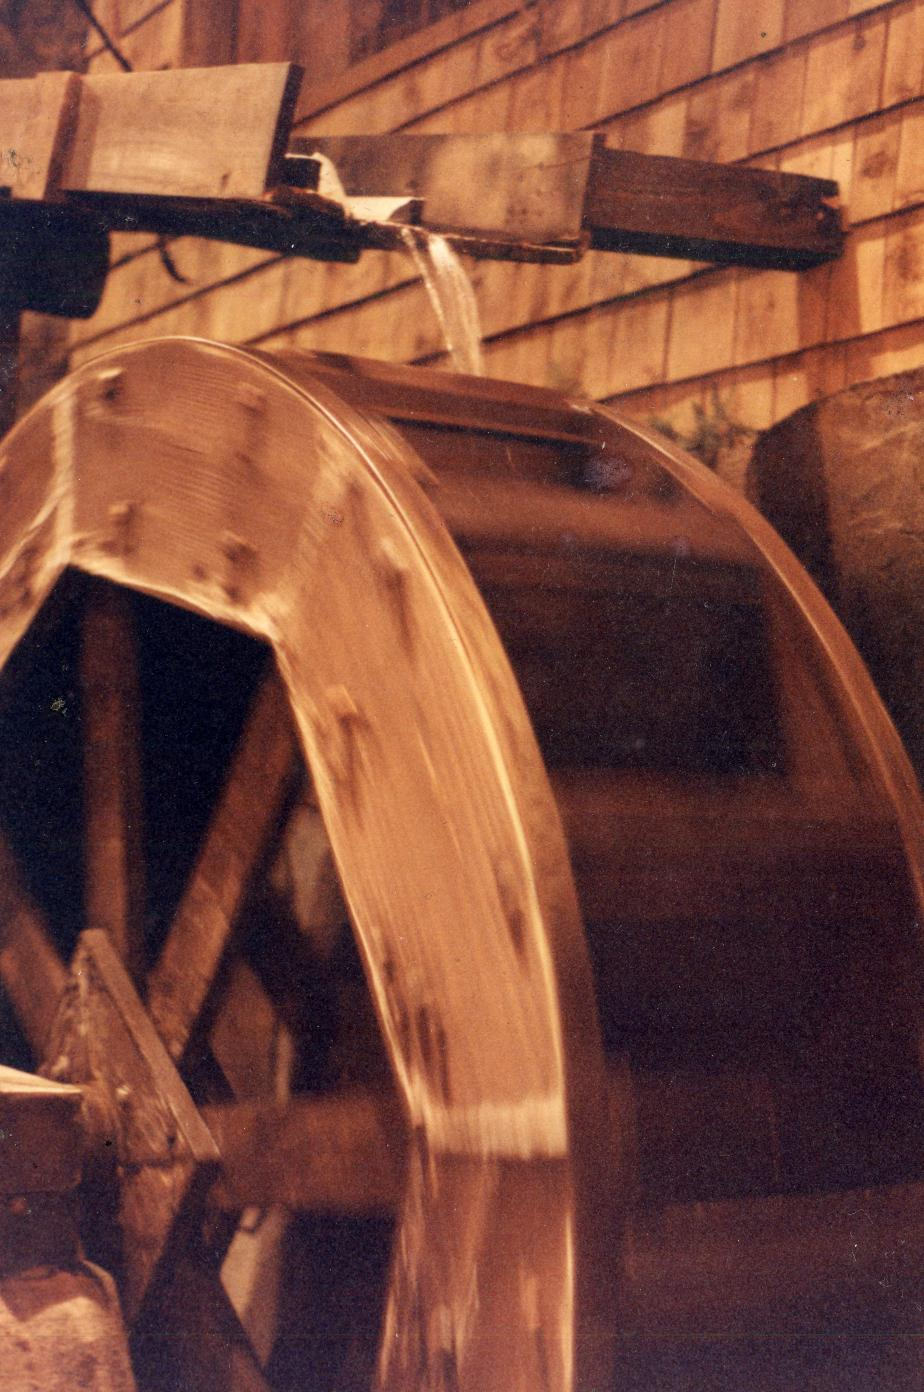 Grist Mill Water Wheel - Heritage New Hampshire - Glen NH